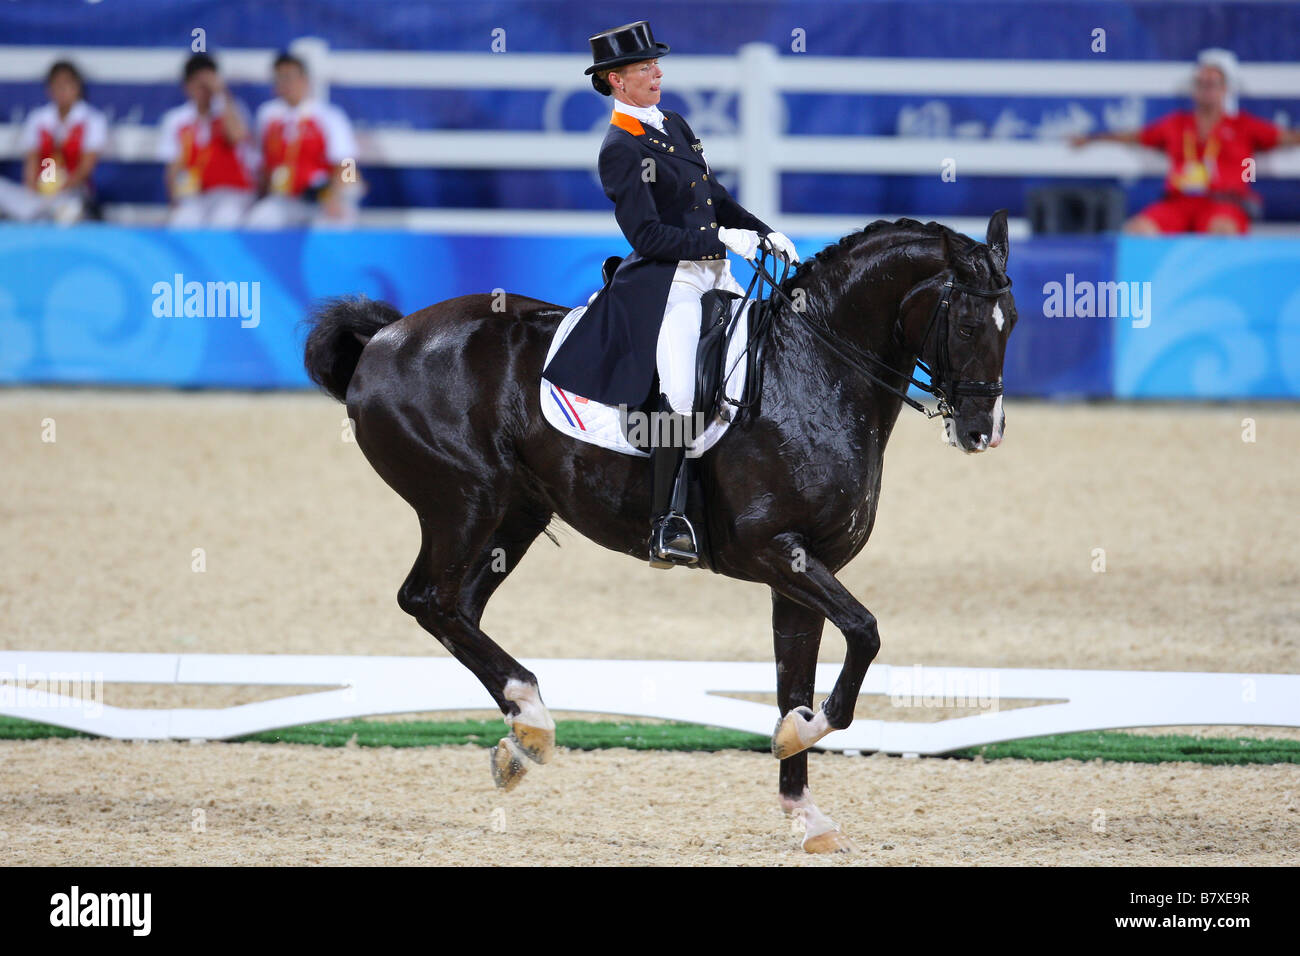 Dressage Olympic Stock Photos Amp Dressage Olympic Stock